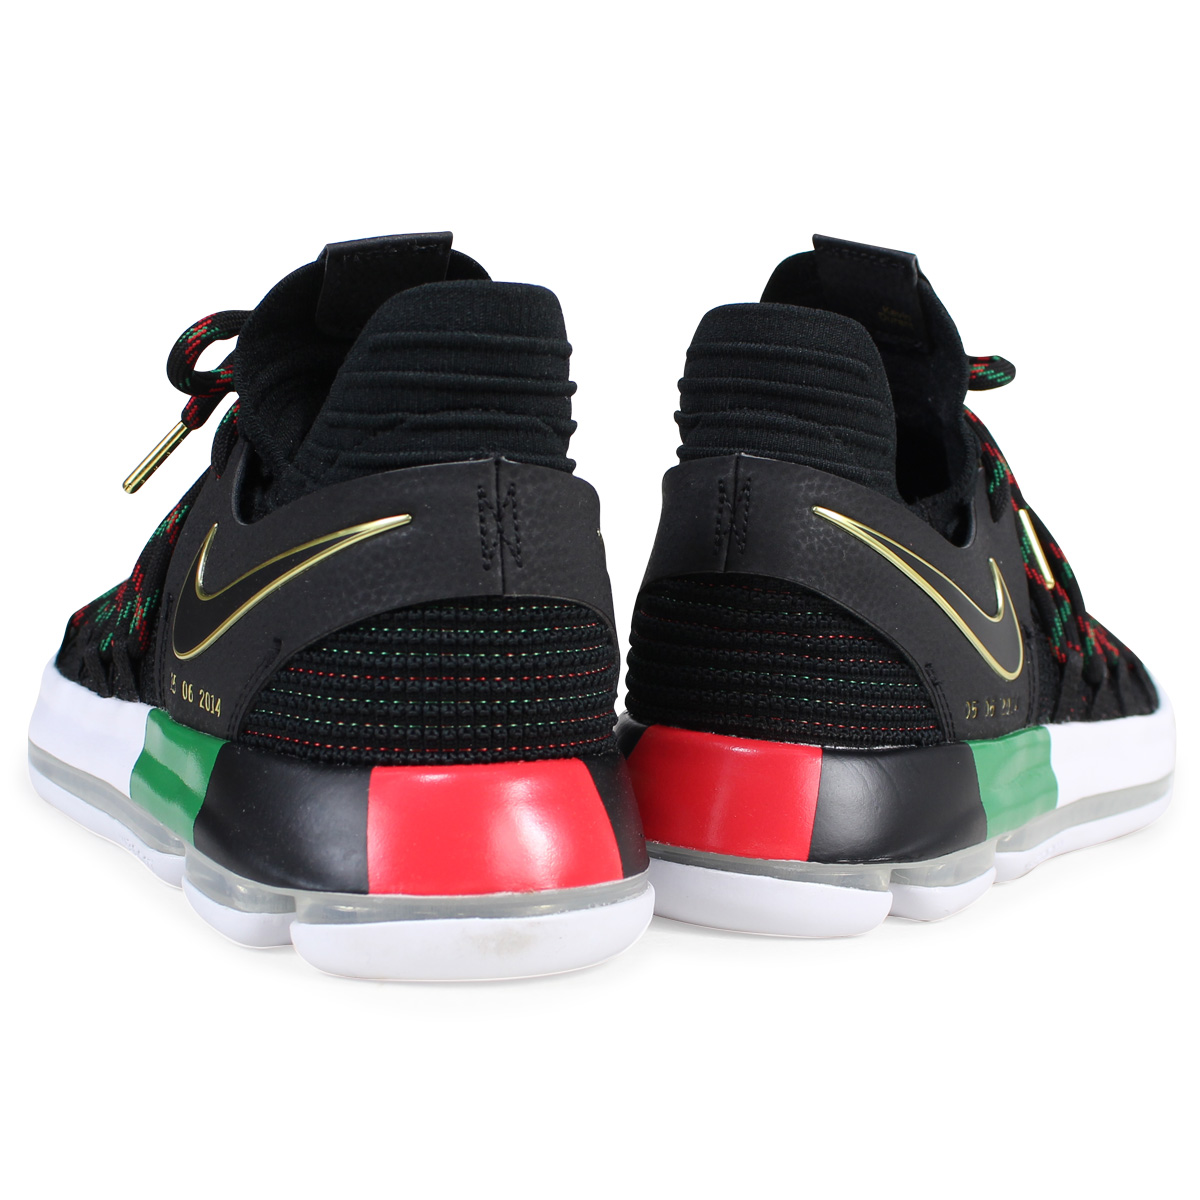 hot sale online 3045a 4534a NIKE ZOOM KD 10 LMTD EP BHM Nike KD10 sneakers men AA4197-003 Kevin Durant  black